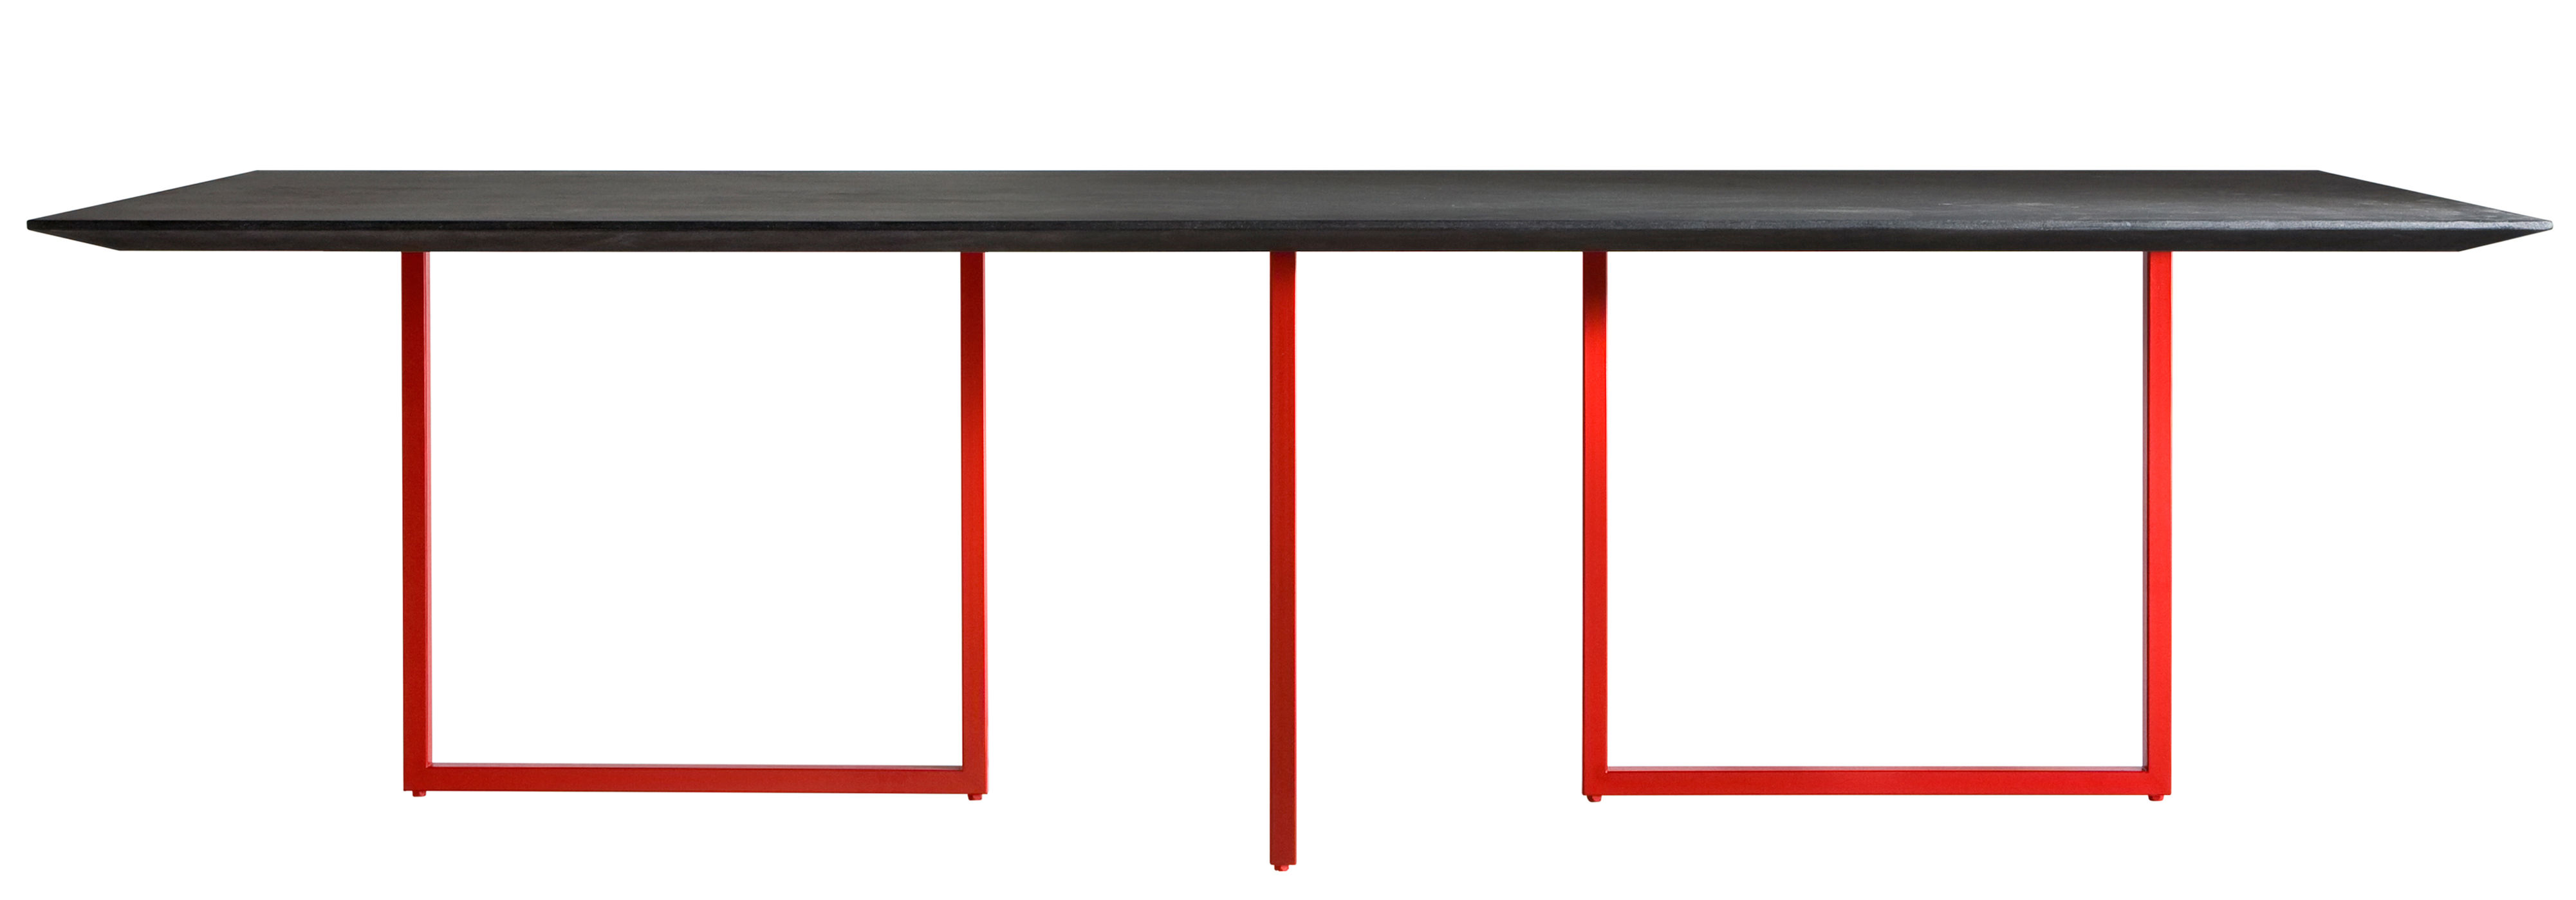 table gazelle l 210 x 90 cm plateau anthracite pied rouge driade. Black Bedroom Furniture Sets. Home Design Ideas